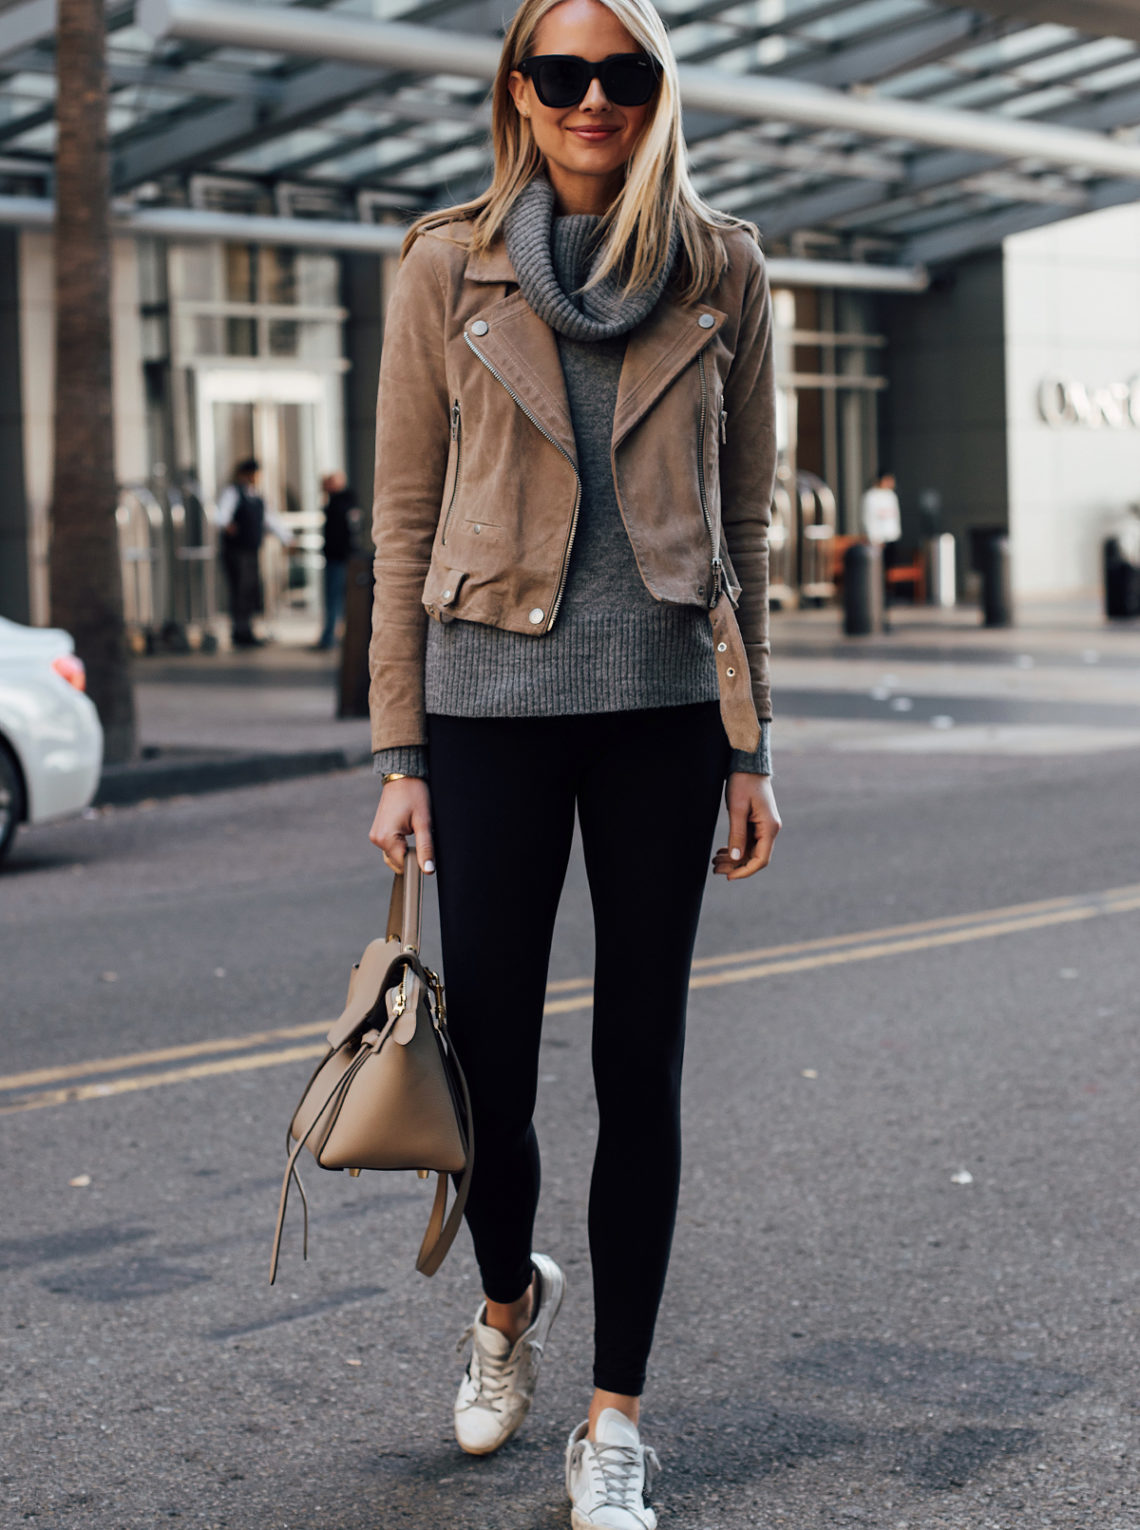 Blonde Woman Wearing Blanknyc Tan Suede Moto Jacket Grey Turtleneck Sweater Black Leggings Golden Goose Sneakers Celine Mini Belt Bag Fashion Jackson San Diego Fashion Blogger Street Style